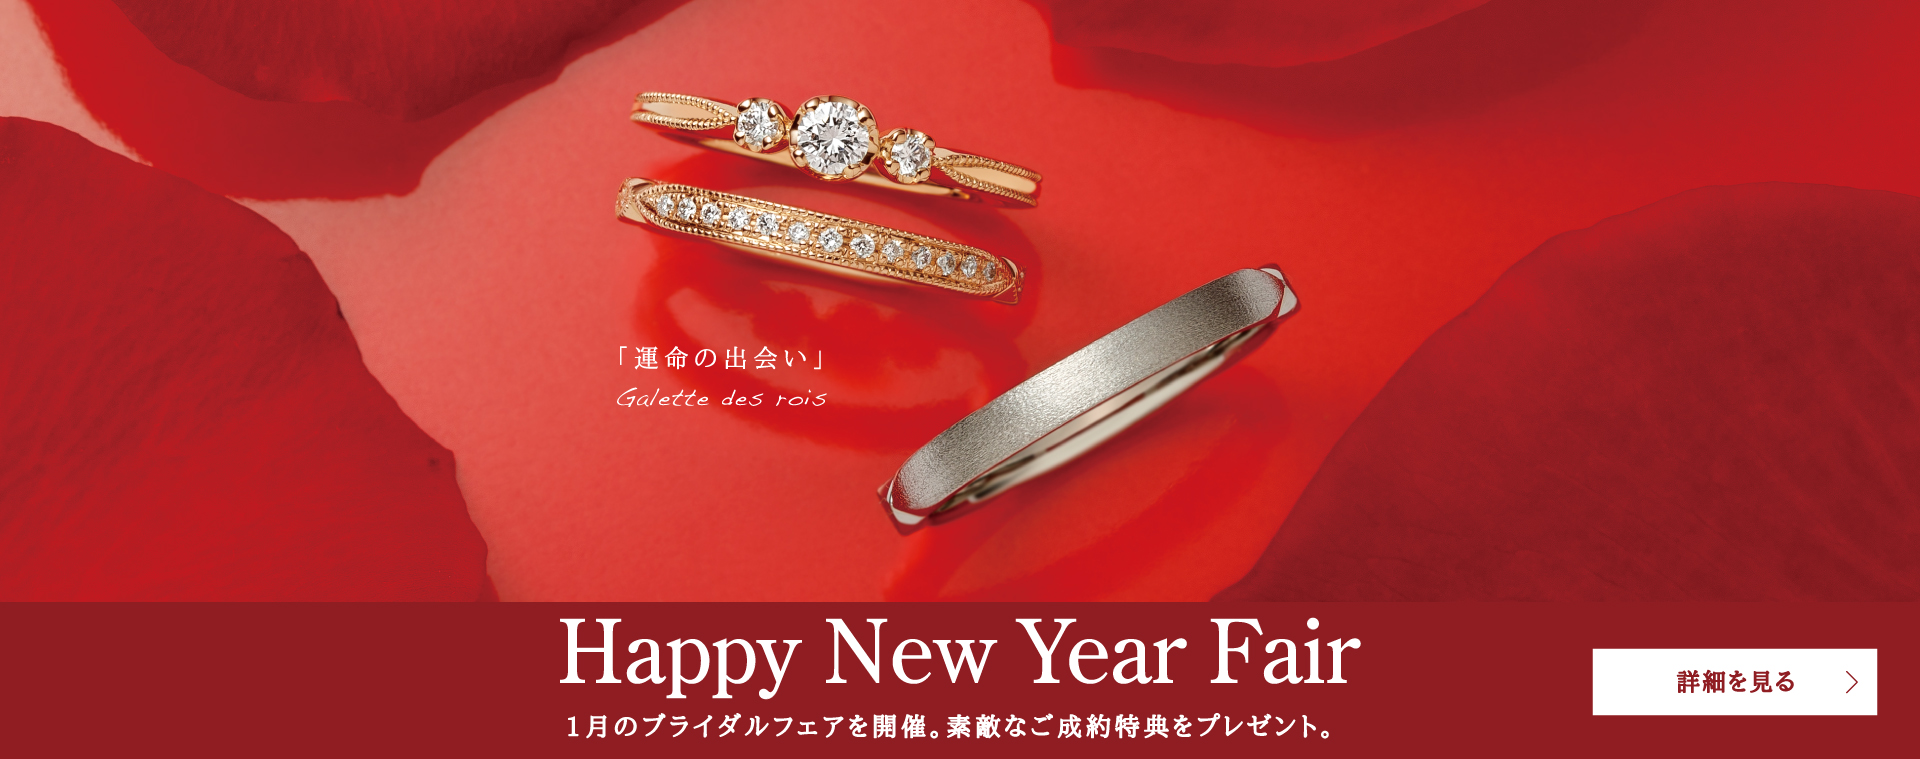 Happy New Year Fair